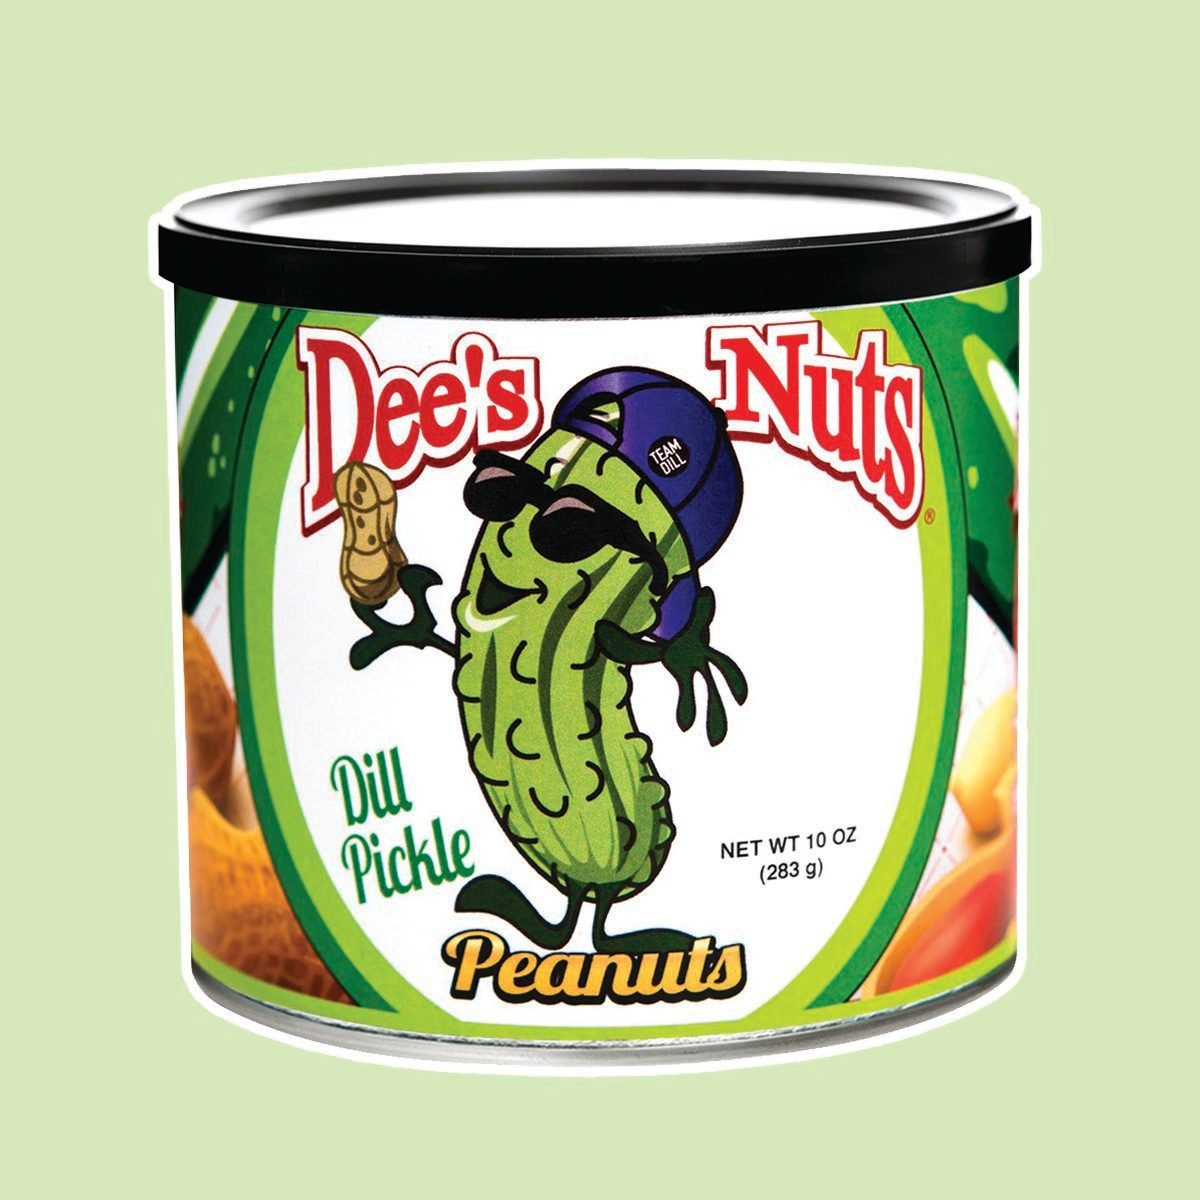 Dee's Nuts Dill Pickle Flavored Gourmet Peanuts (10 oz)